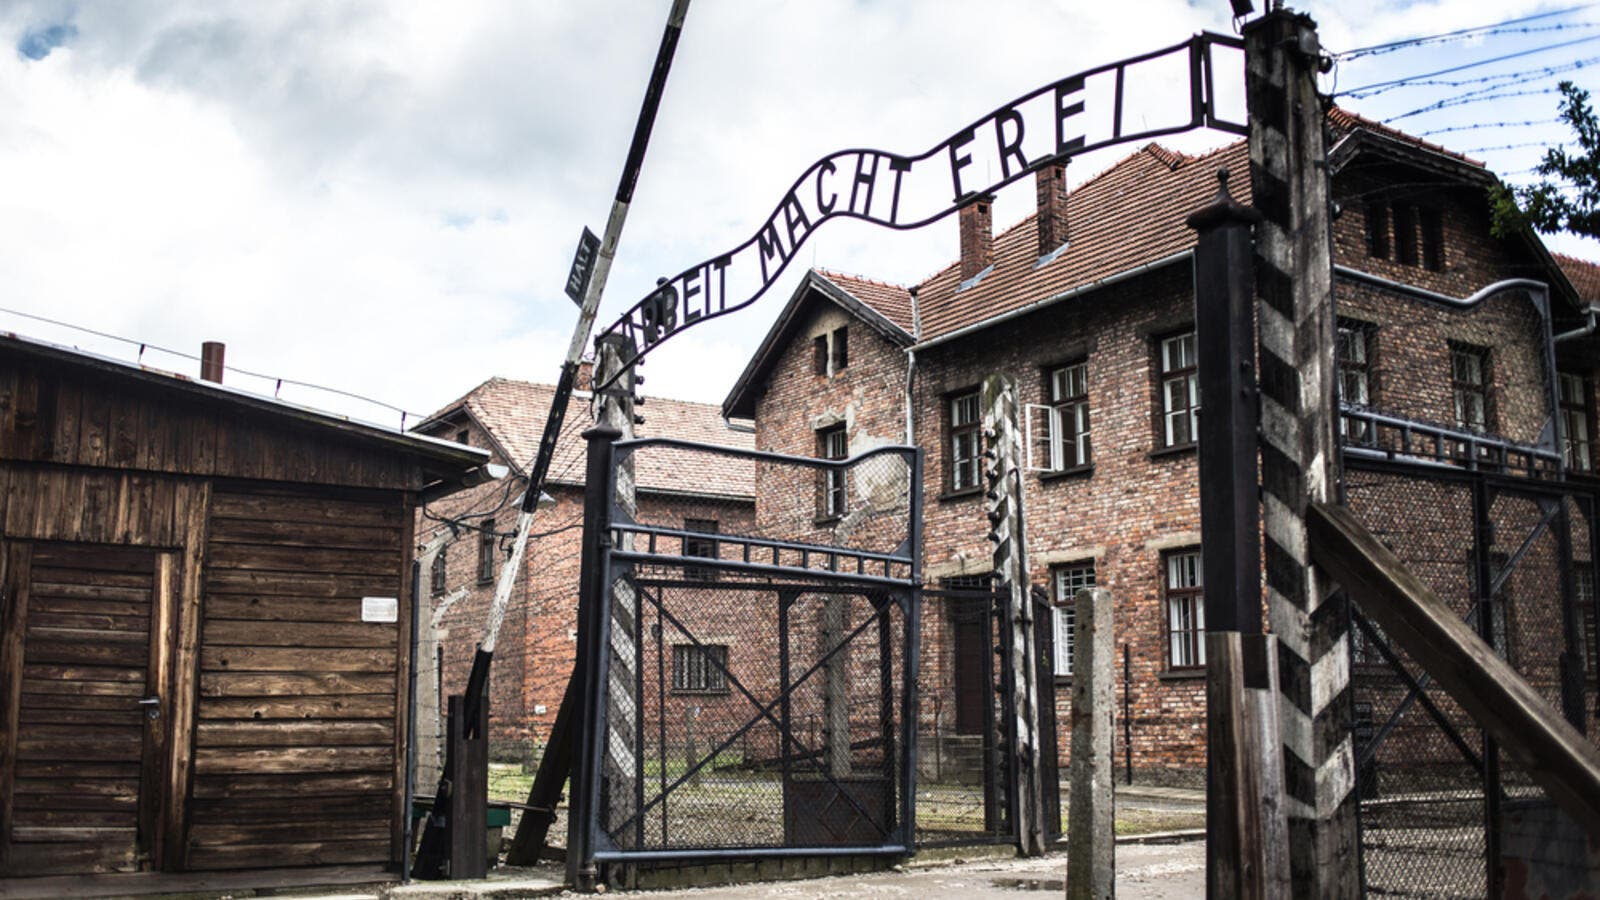 Holocaust Memorial Museum. The main gate of the concentration camp Auschwitz with the inscription work makes you free (Shutterstock)